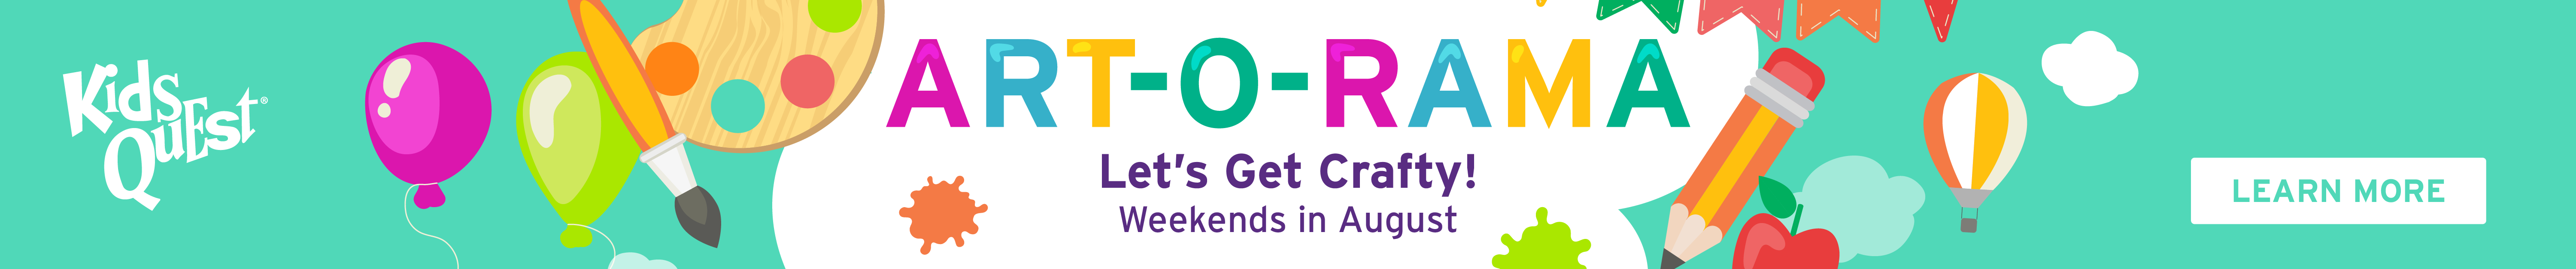 Art-O-Rama at Kids Quest in August